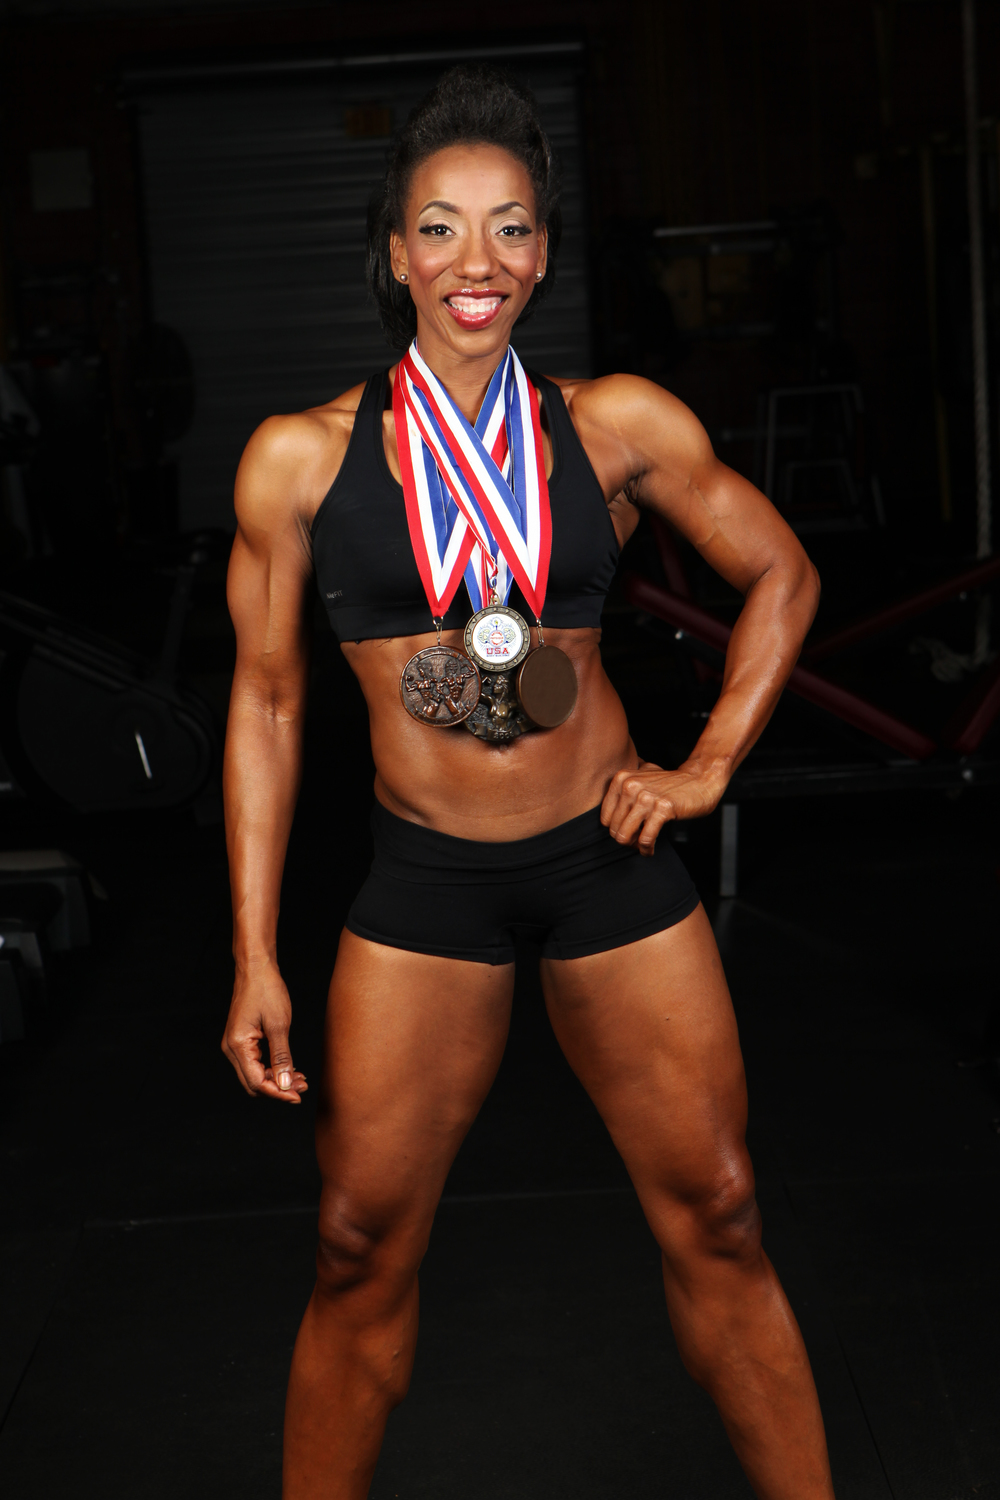 laticia-action-jackson-fitness-olympians.jpg